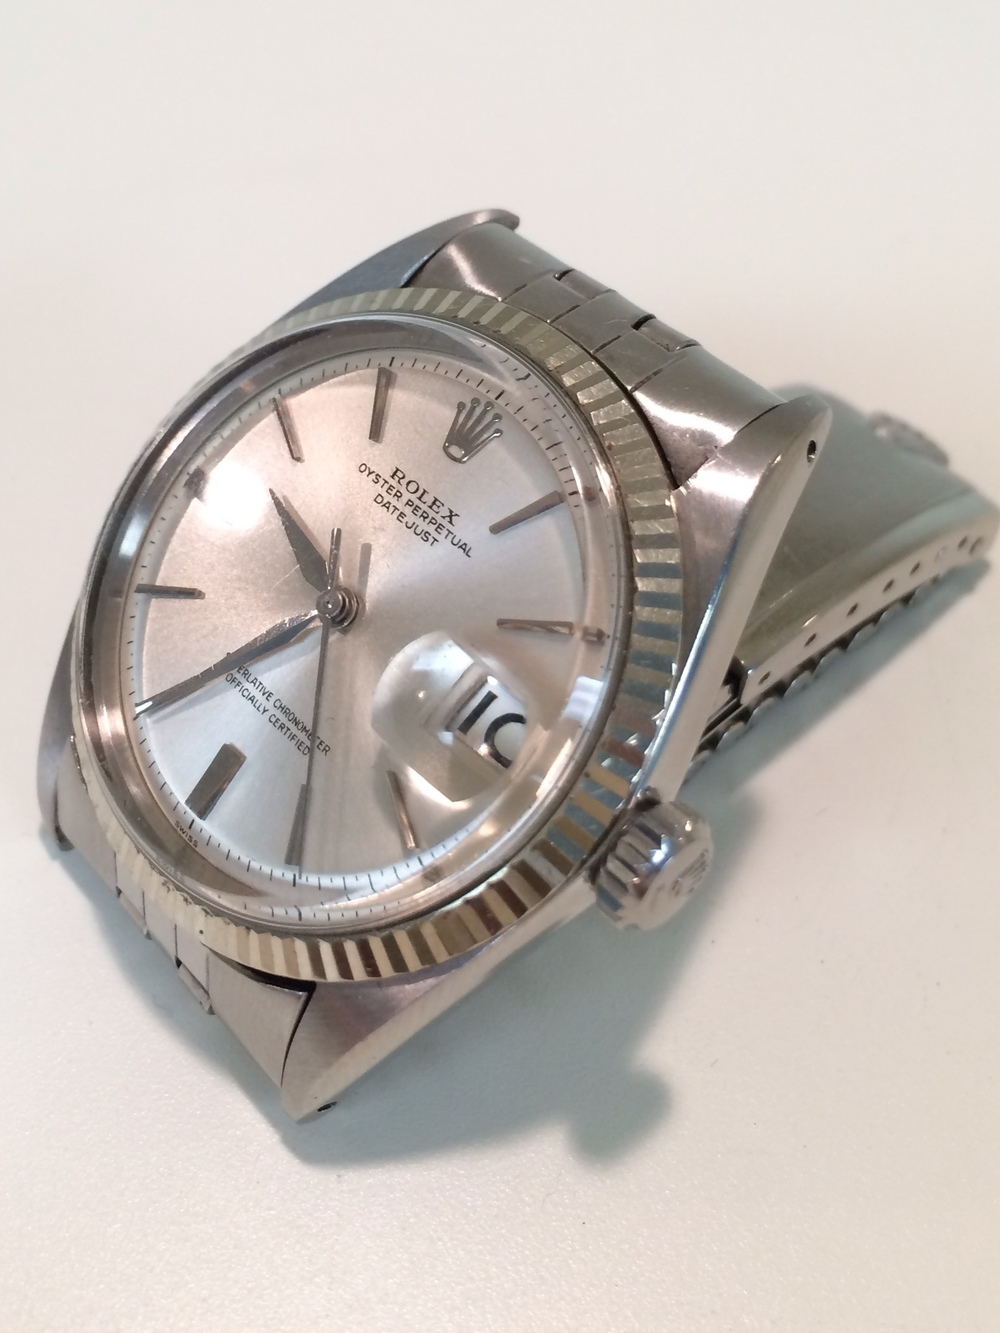 ROLEX DATEJUST 1601 CIRCA 1964. For sale by Robert Maron Inc.